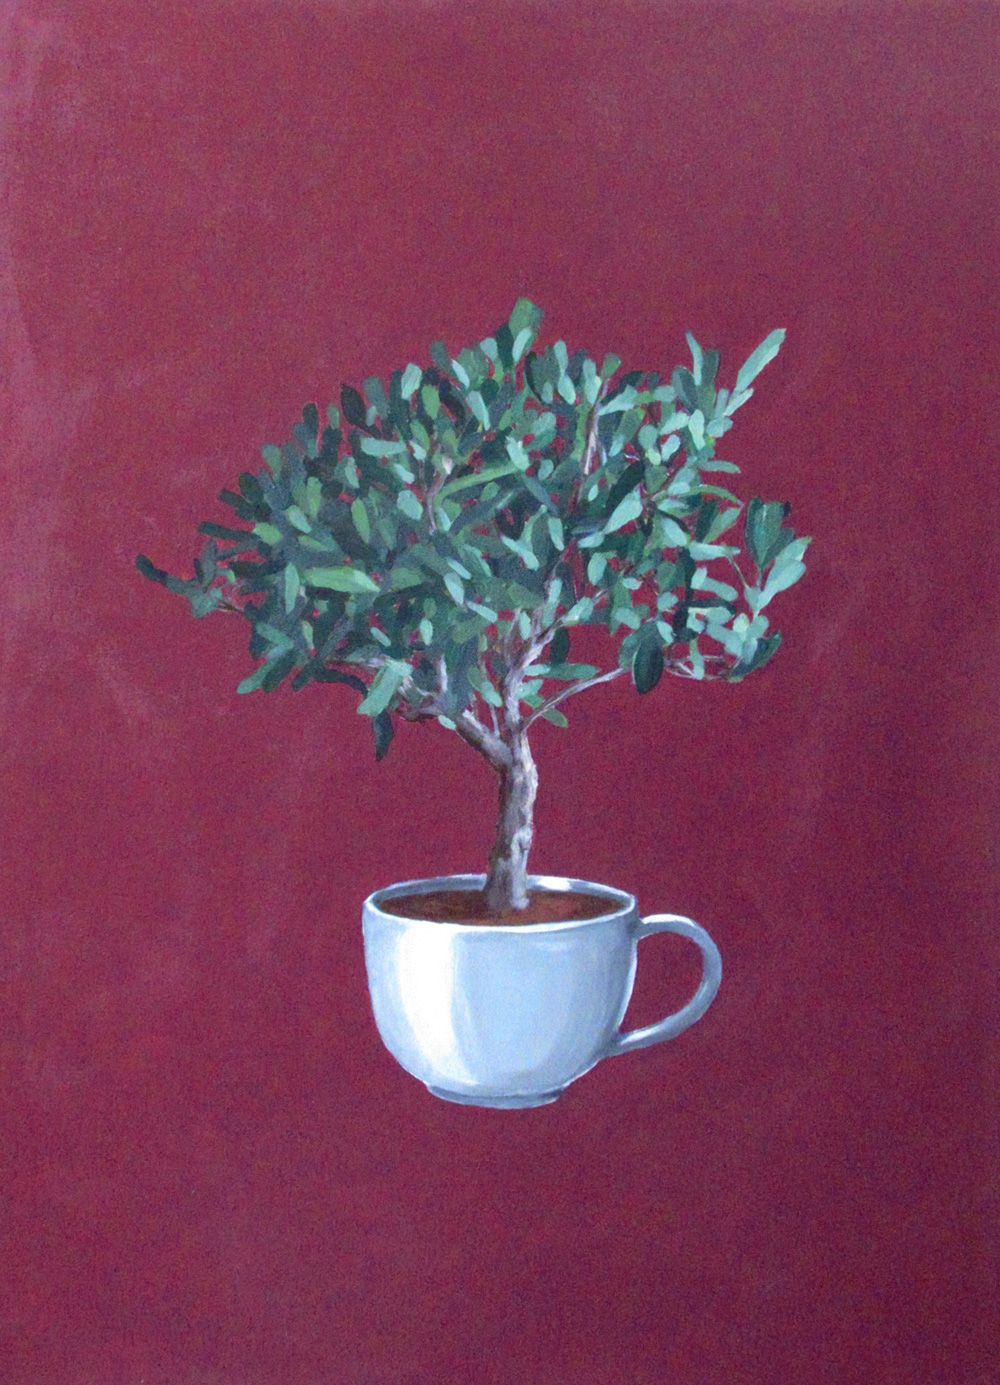 Cristina Mangini Bonsai di olivo in tazza Smalto su tela 50x70 cm